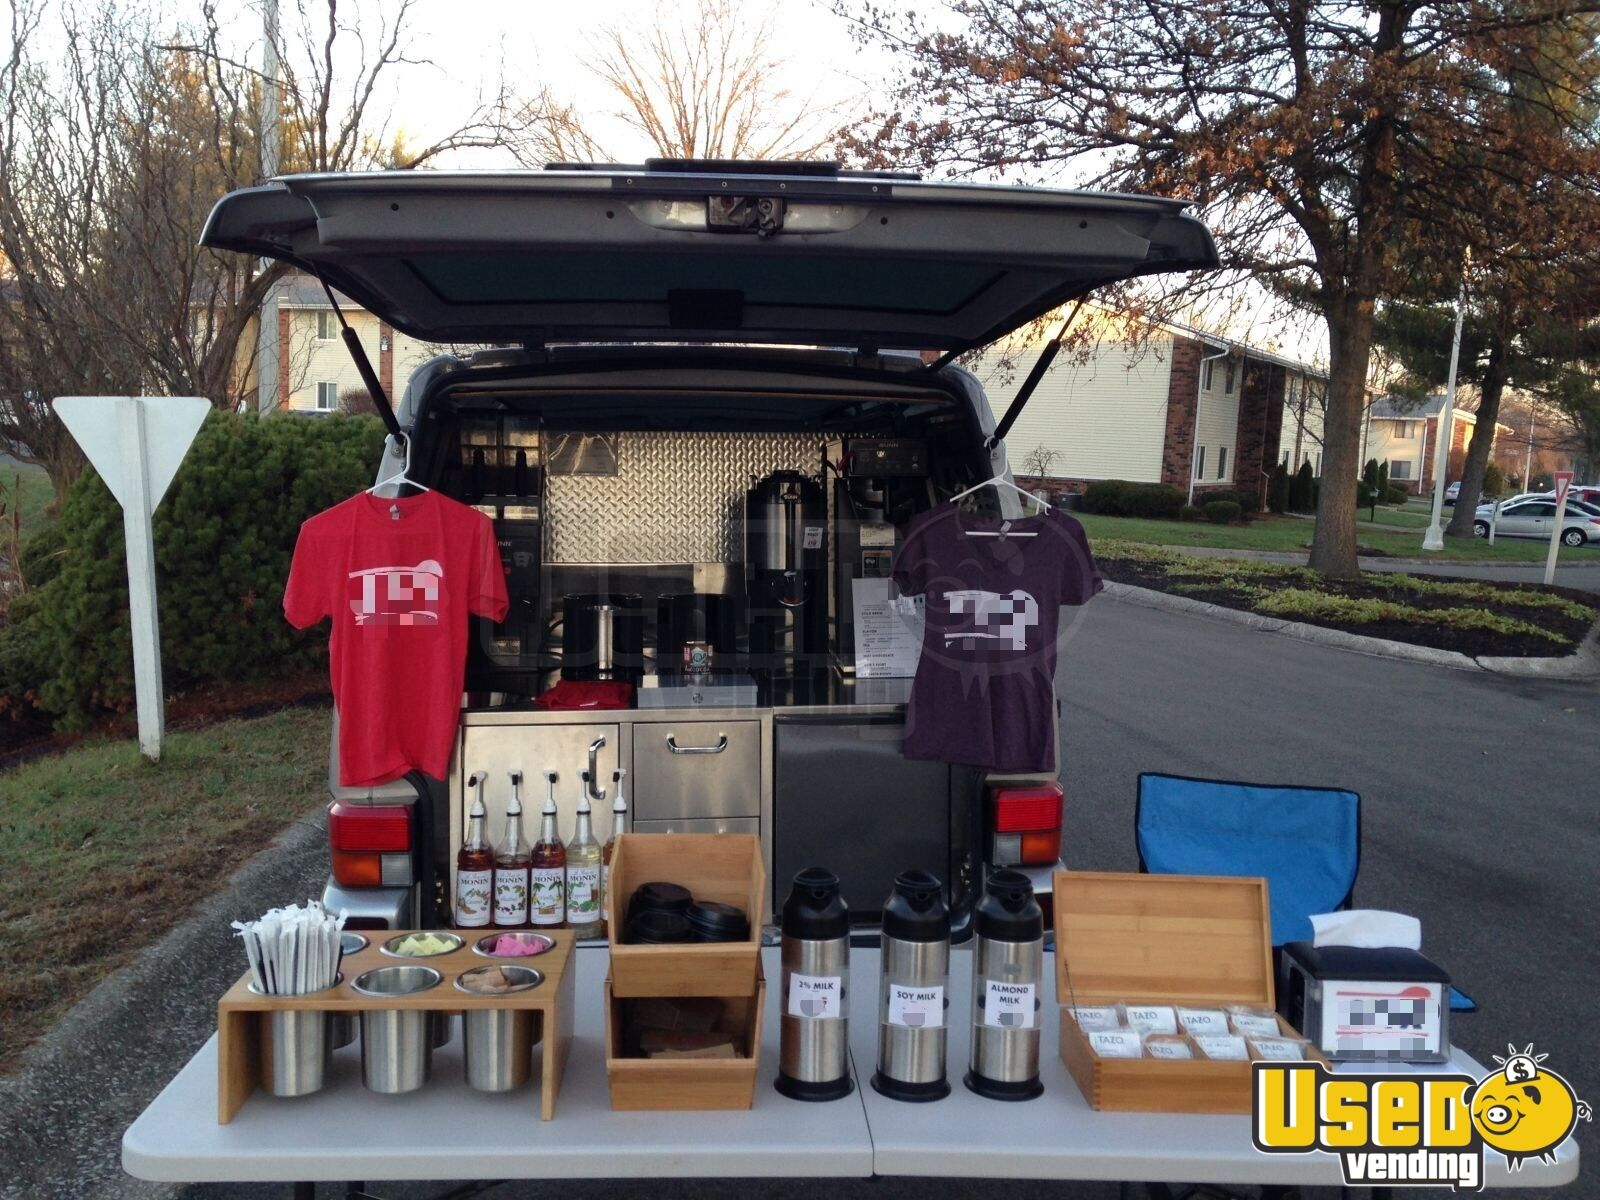 2001 Volkswagen Eurovan Coffee Truck Fresh Water Tank Indiana Gas Engine for Sale - 7